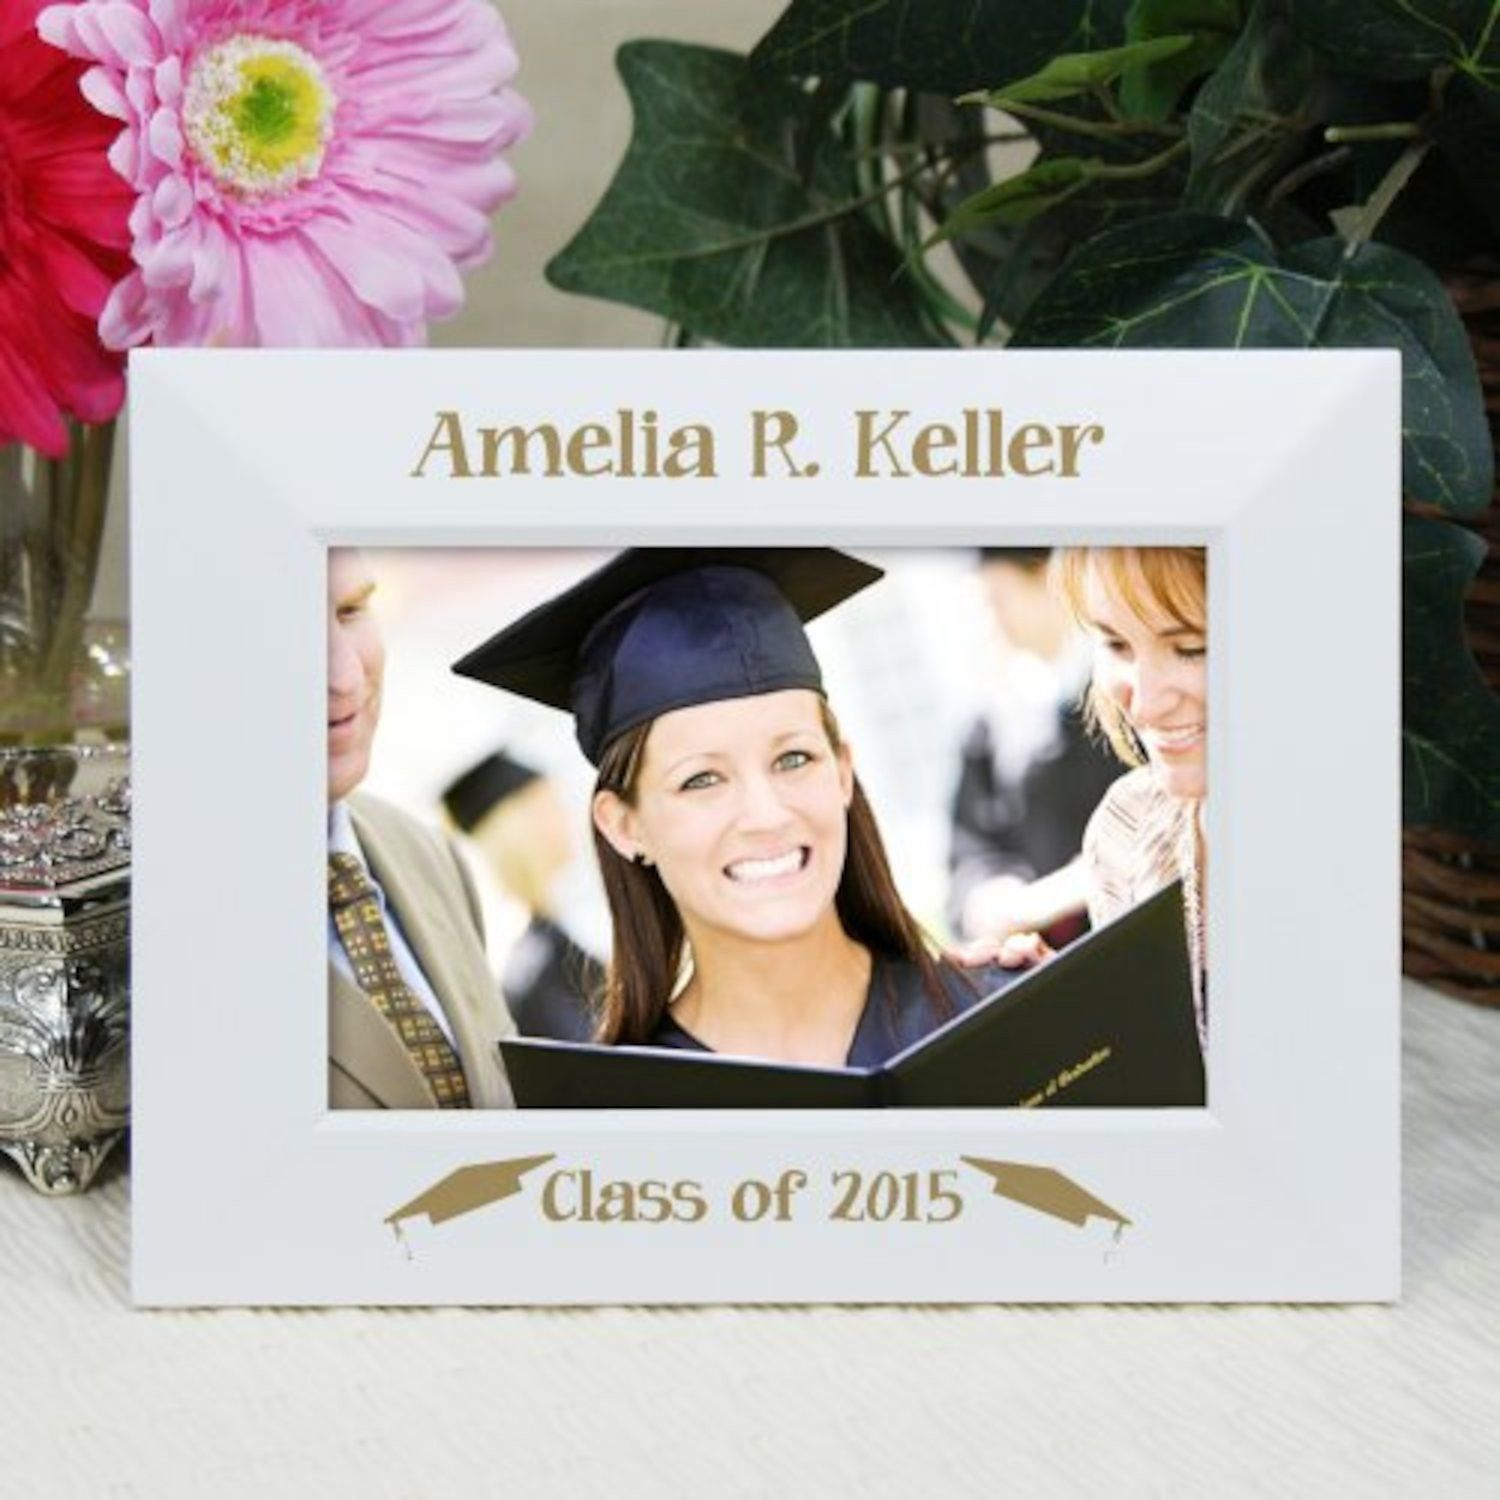 personalized engraved graduation picture frame - Engraved Frames